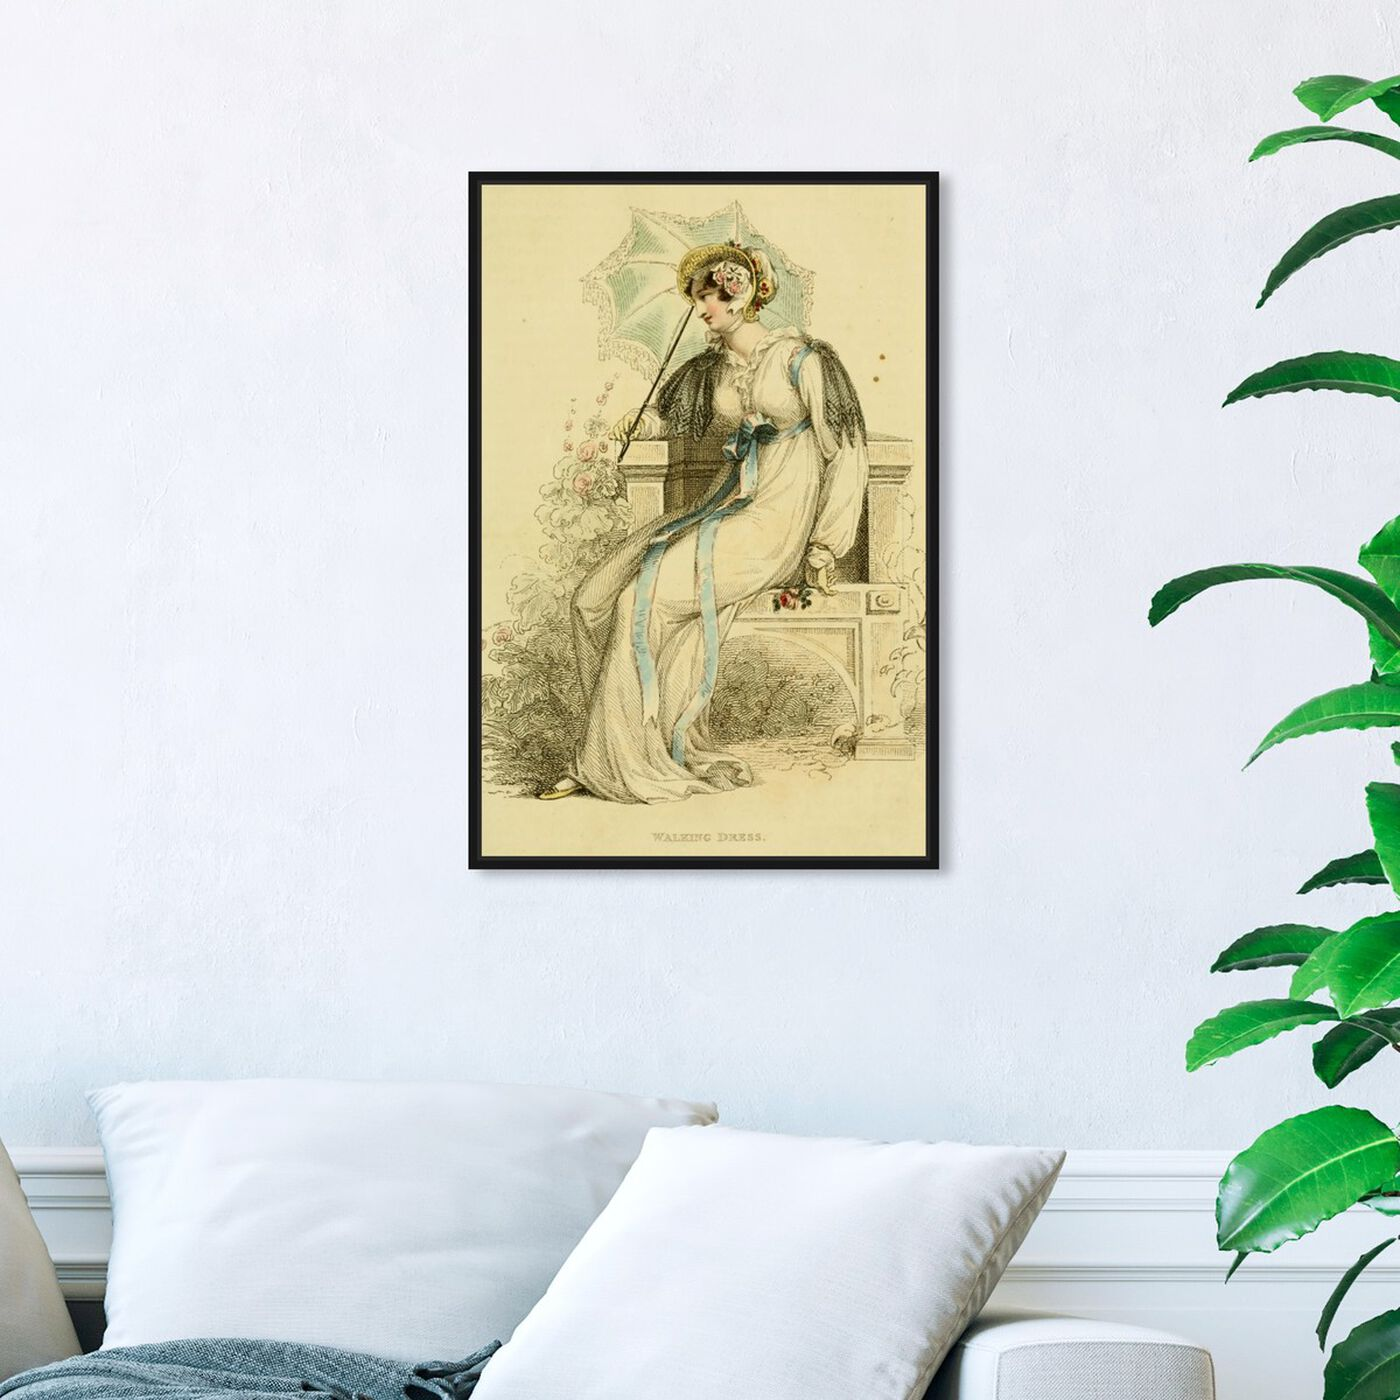 Hanging view of Walking Dress - The Art Cabinet featuring classic and figurative and realism art.